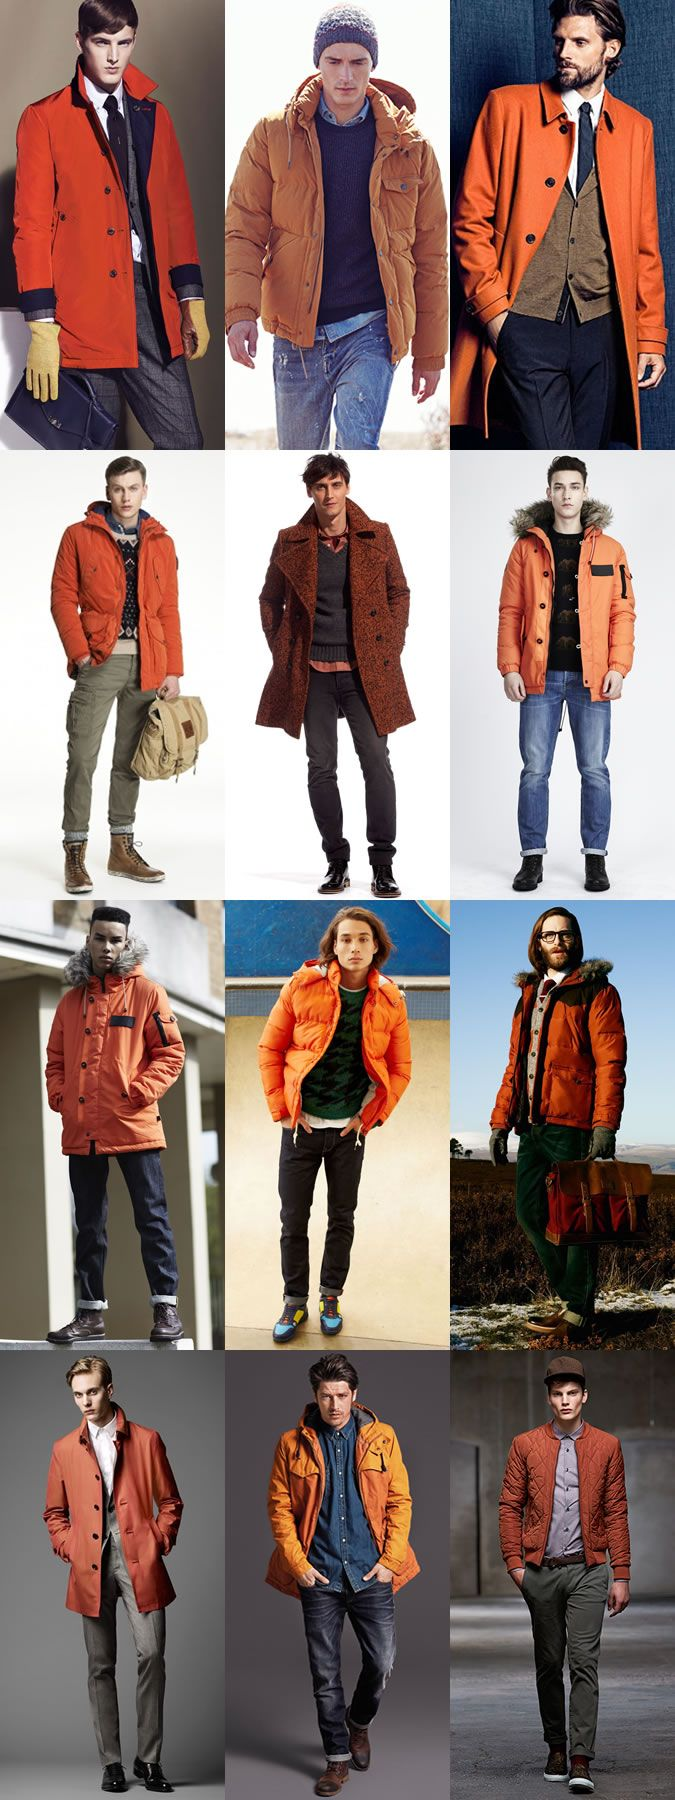 3 Ways To Wear 2014's Winter Orange Trend: 2. Outerwear Lookbook Inspiration